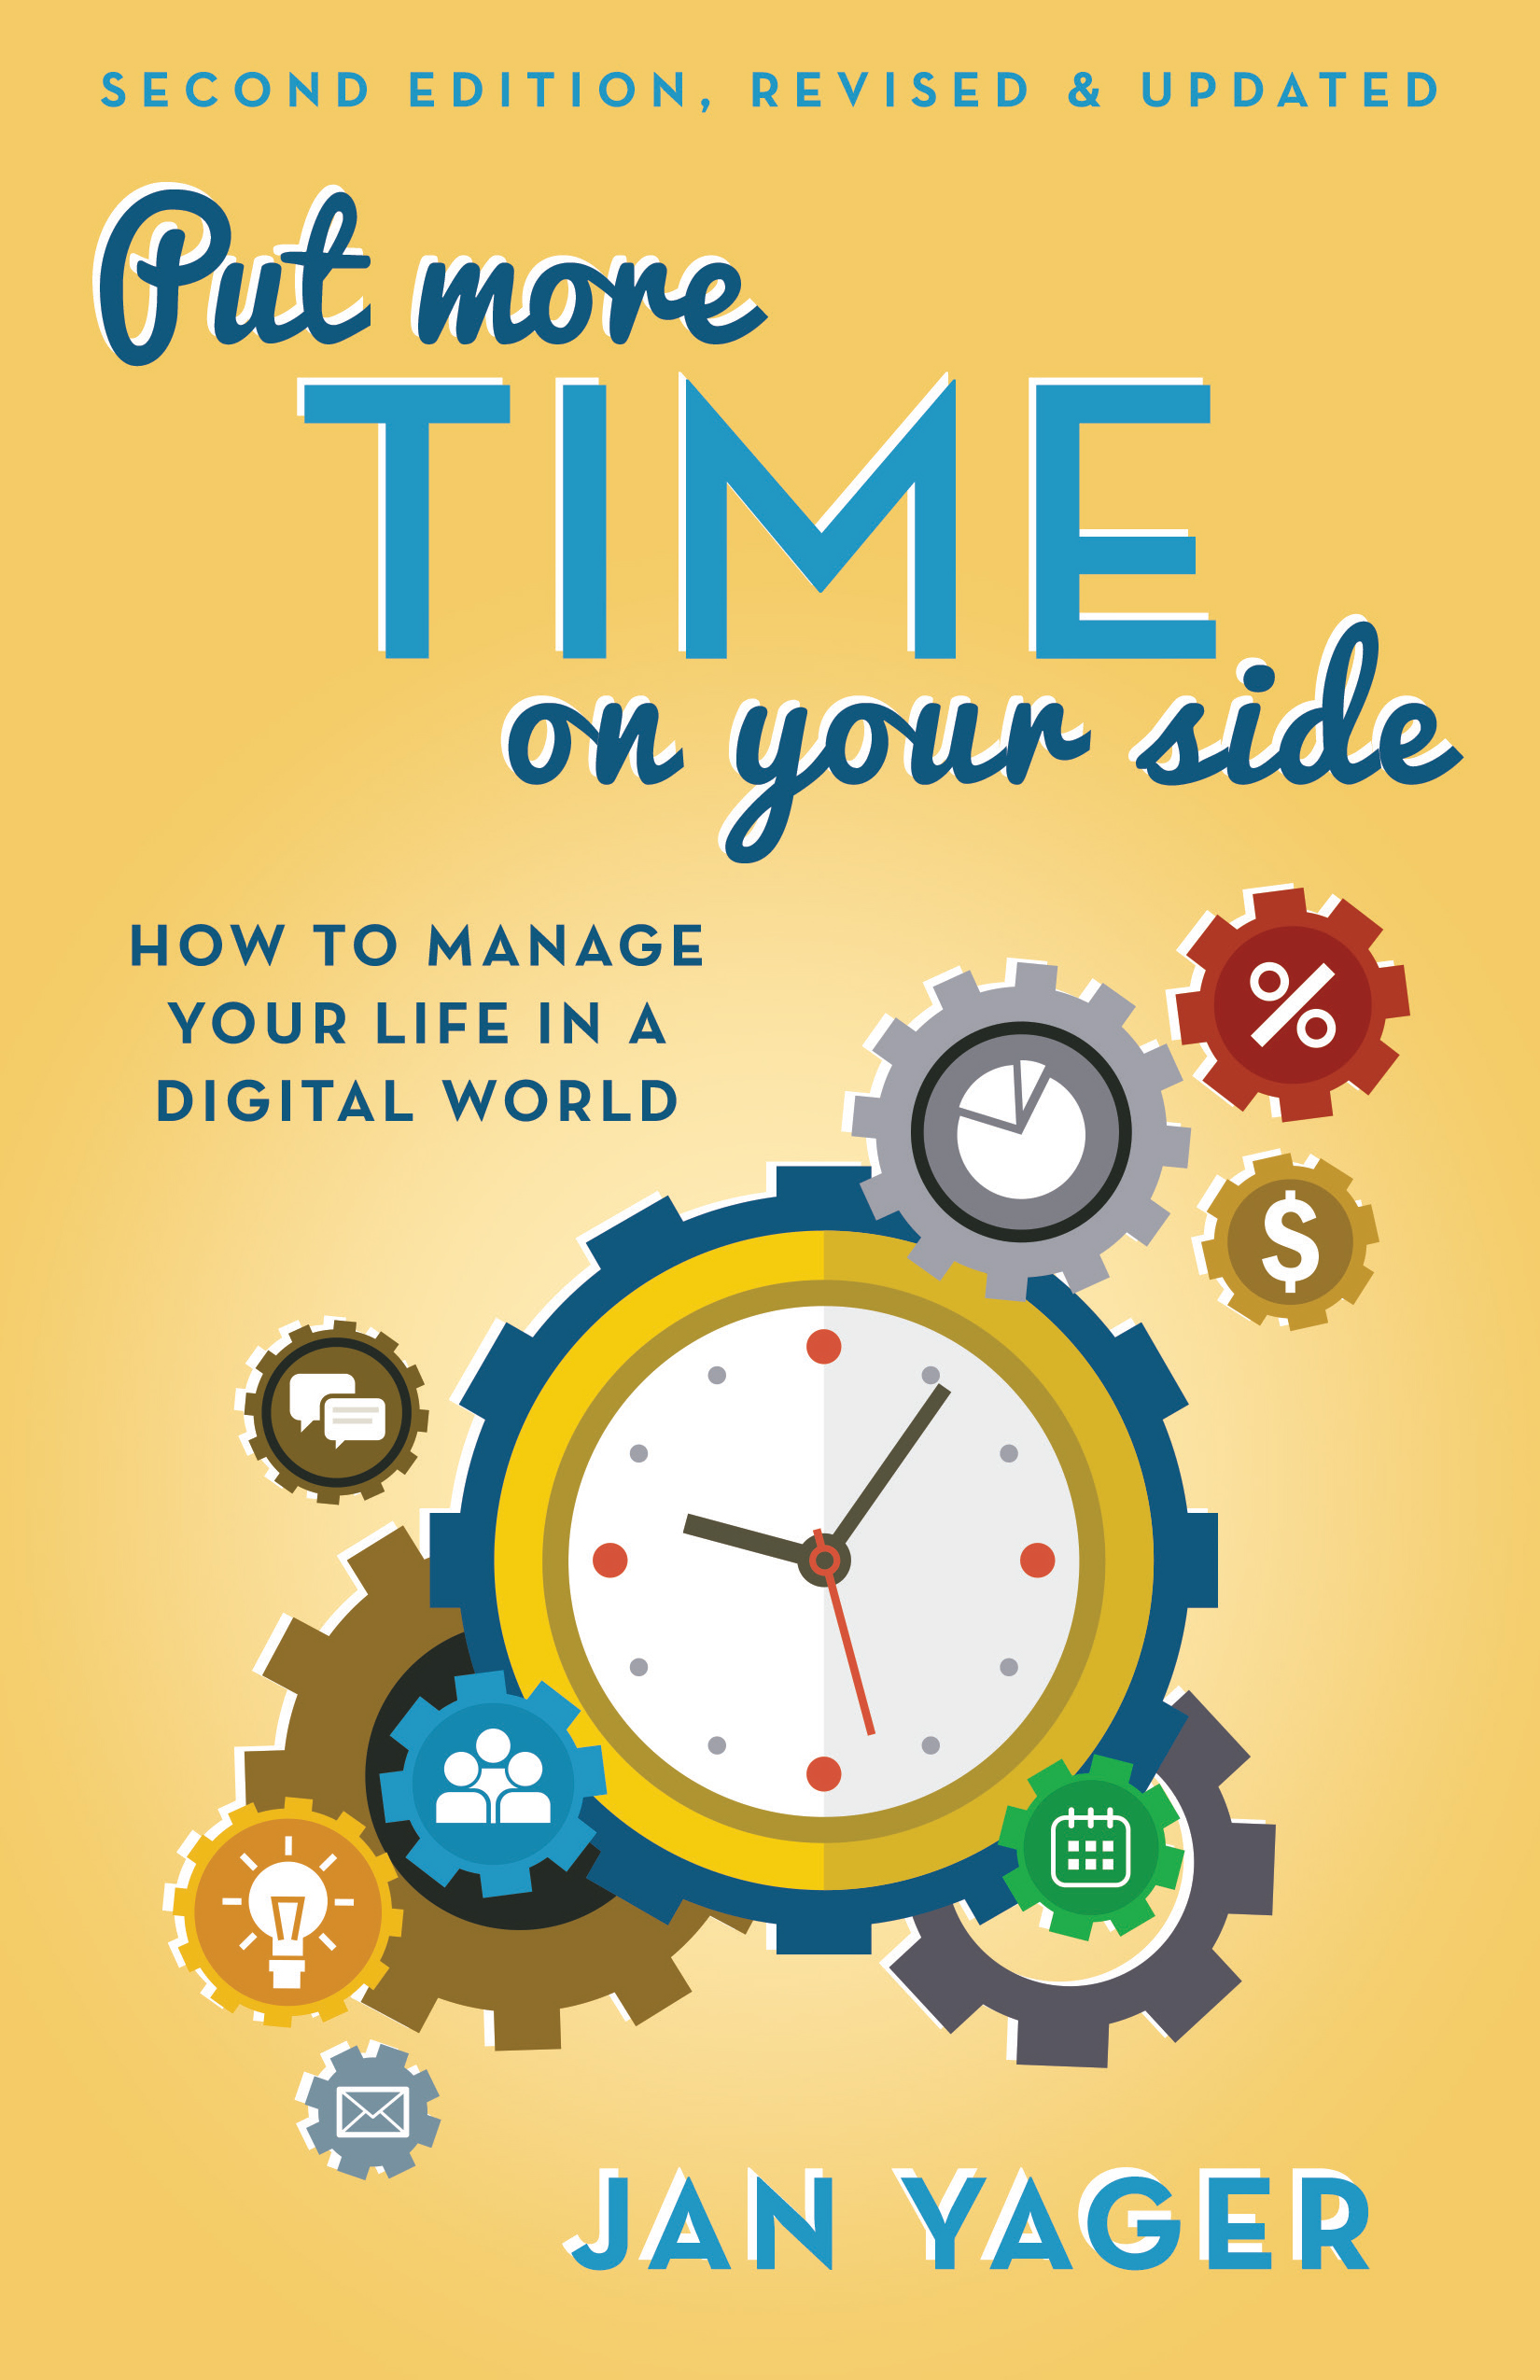 Put More Time on Your Side - By jan yager